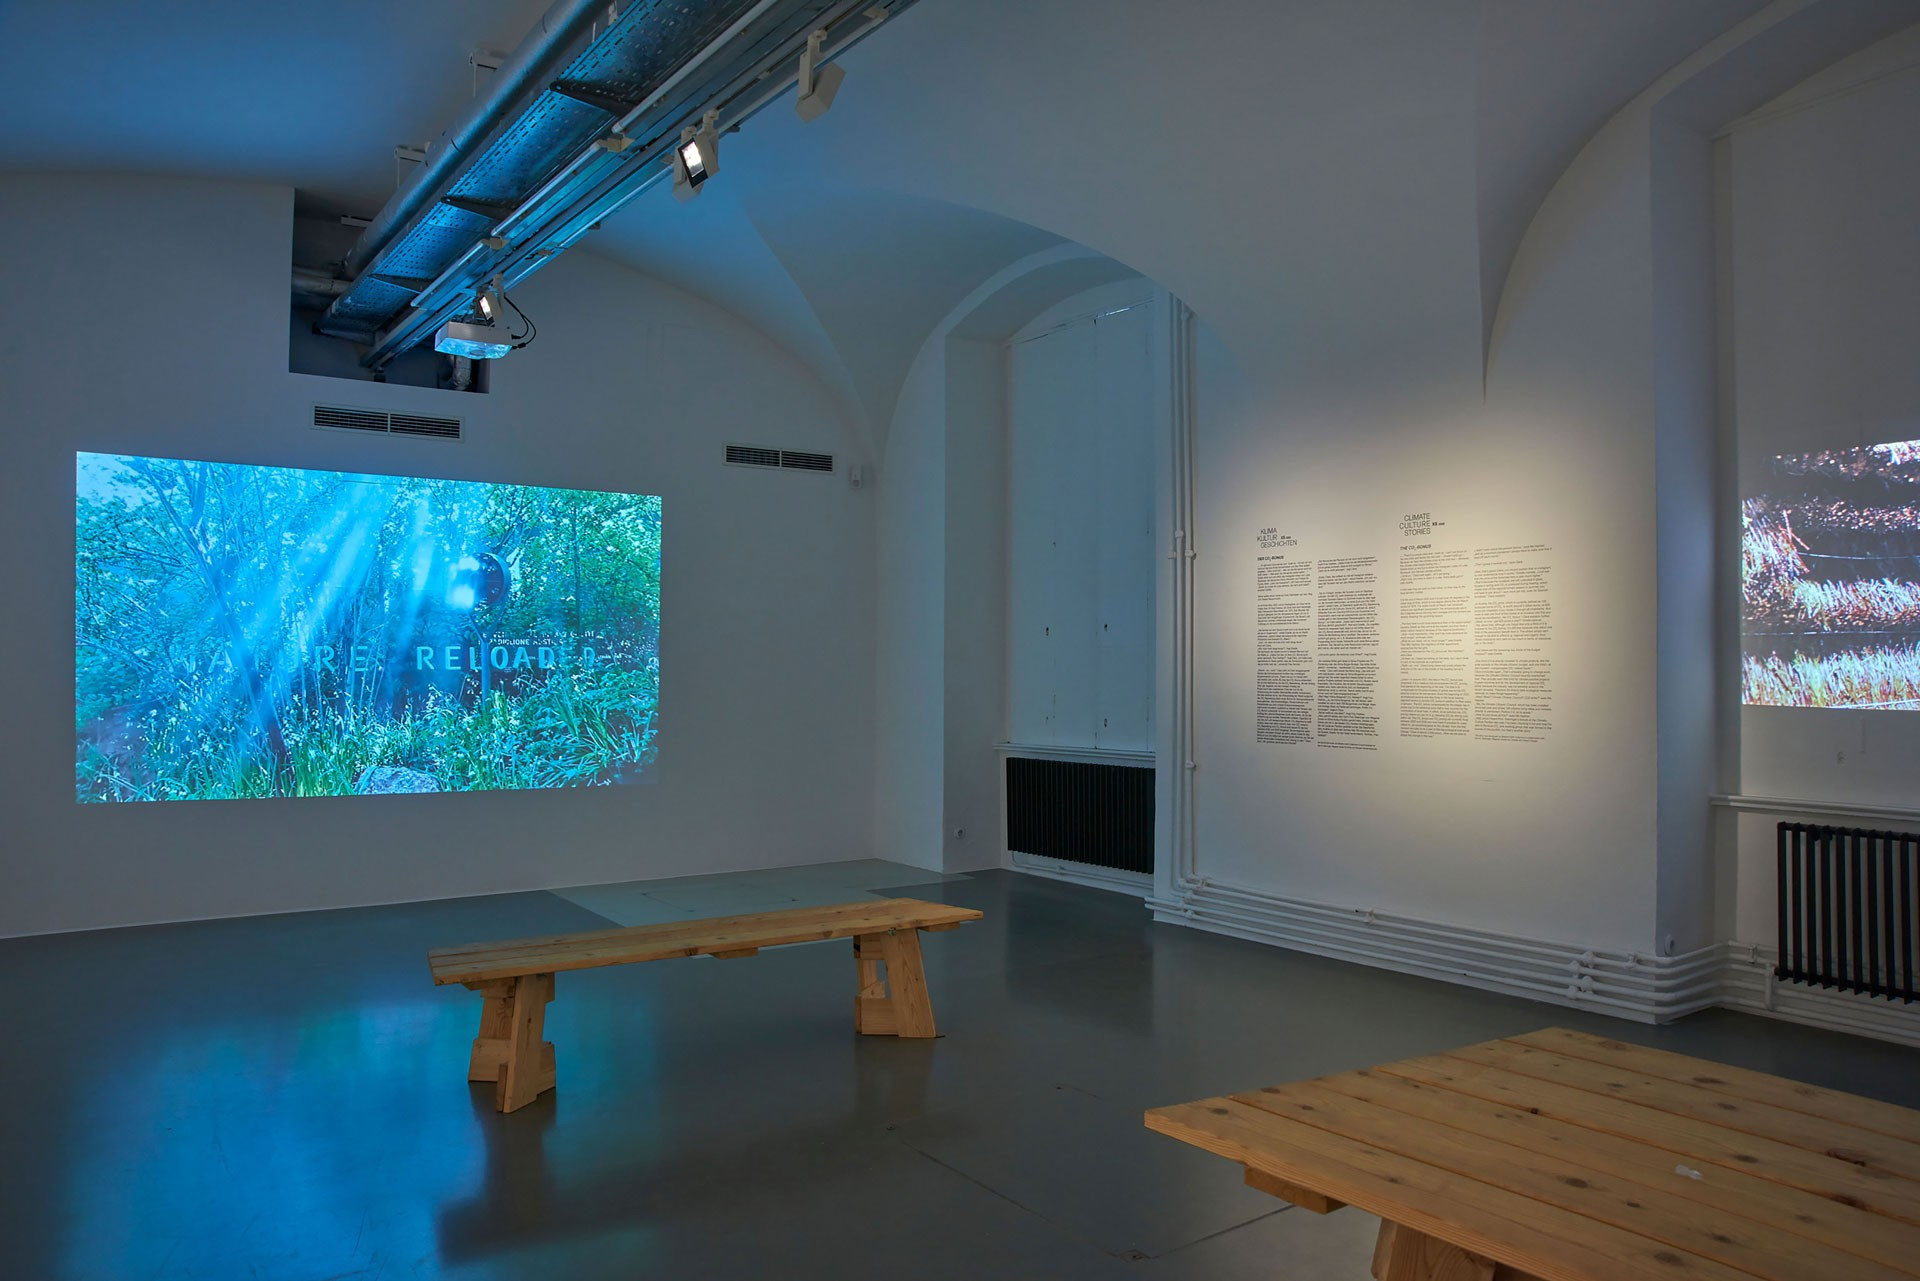 <BODY><div>MAK Exhibition View, 2021</div><div>BREATHE EARTH COLLECTIVE: Climate Culture</div><div>CREATIVE CLIMATE CARE GALLERY</div><div>© MAK/Georg Mayer</div></BODY>